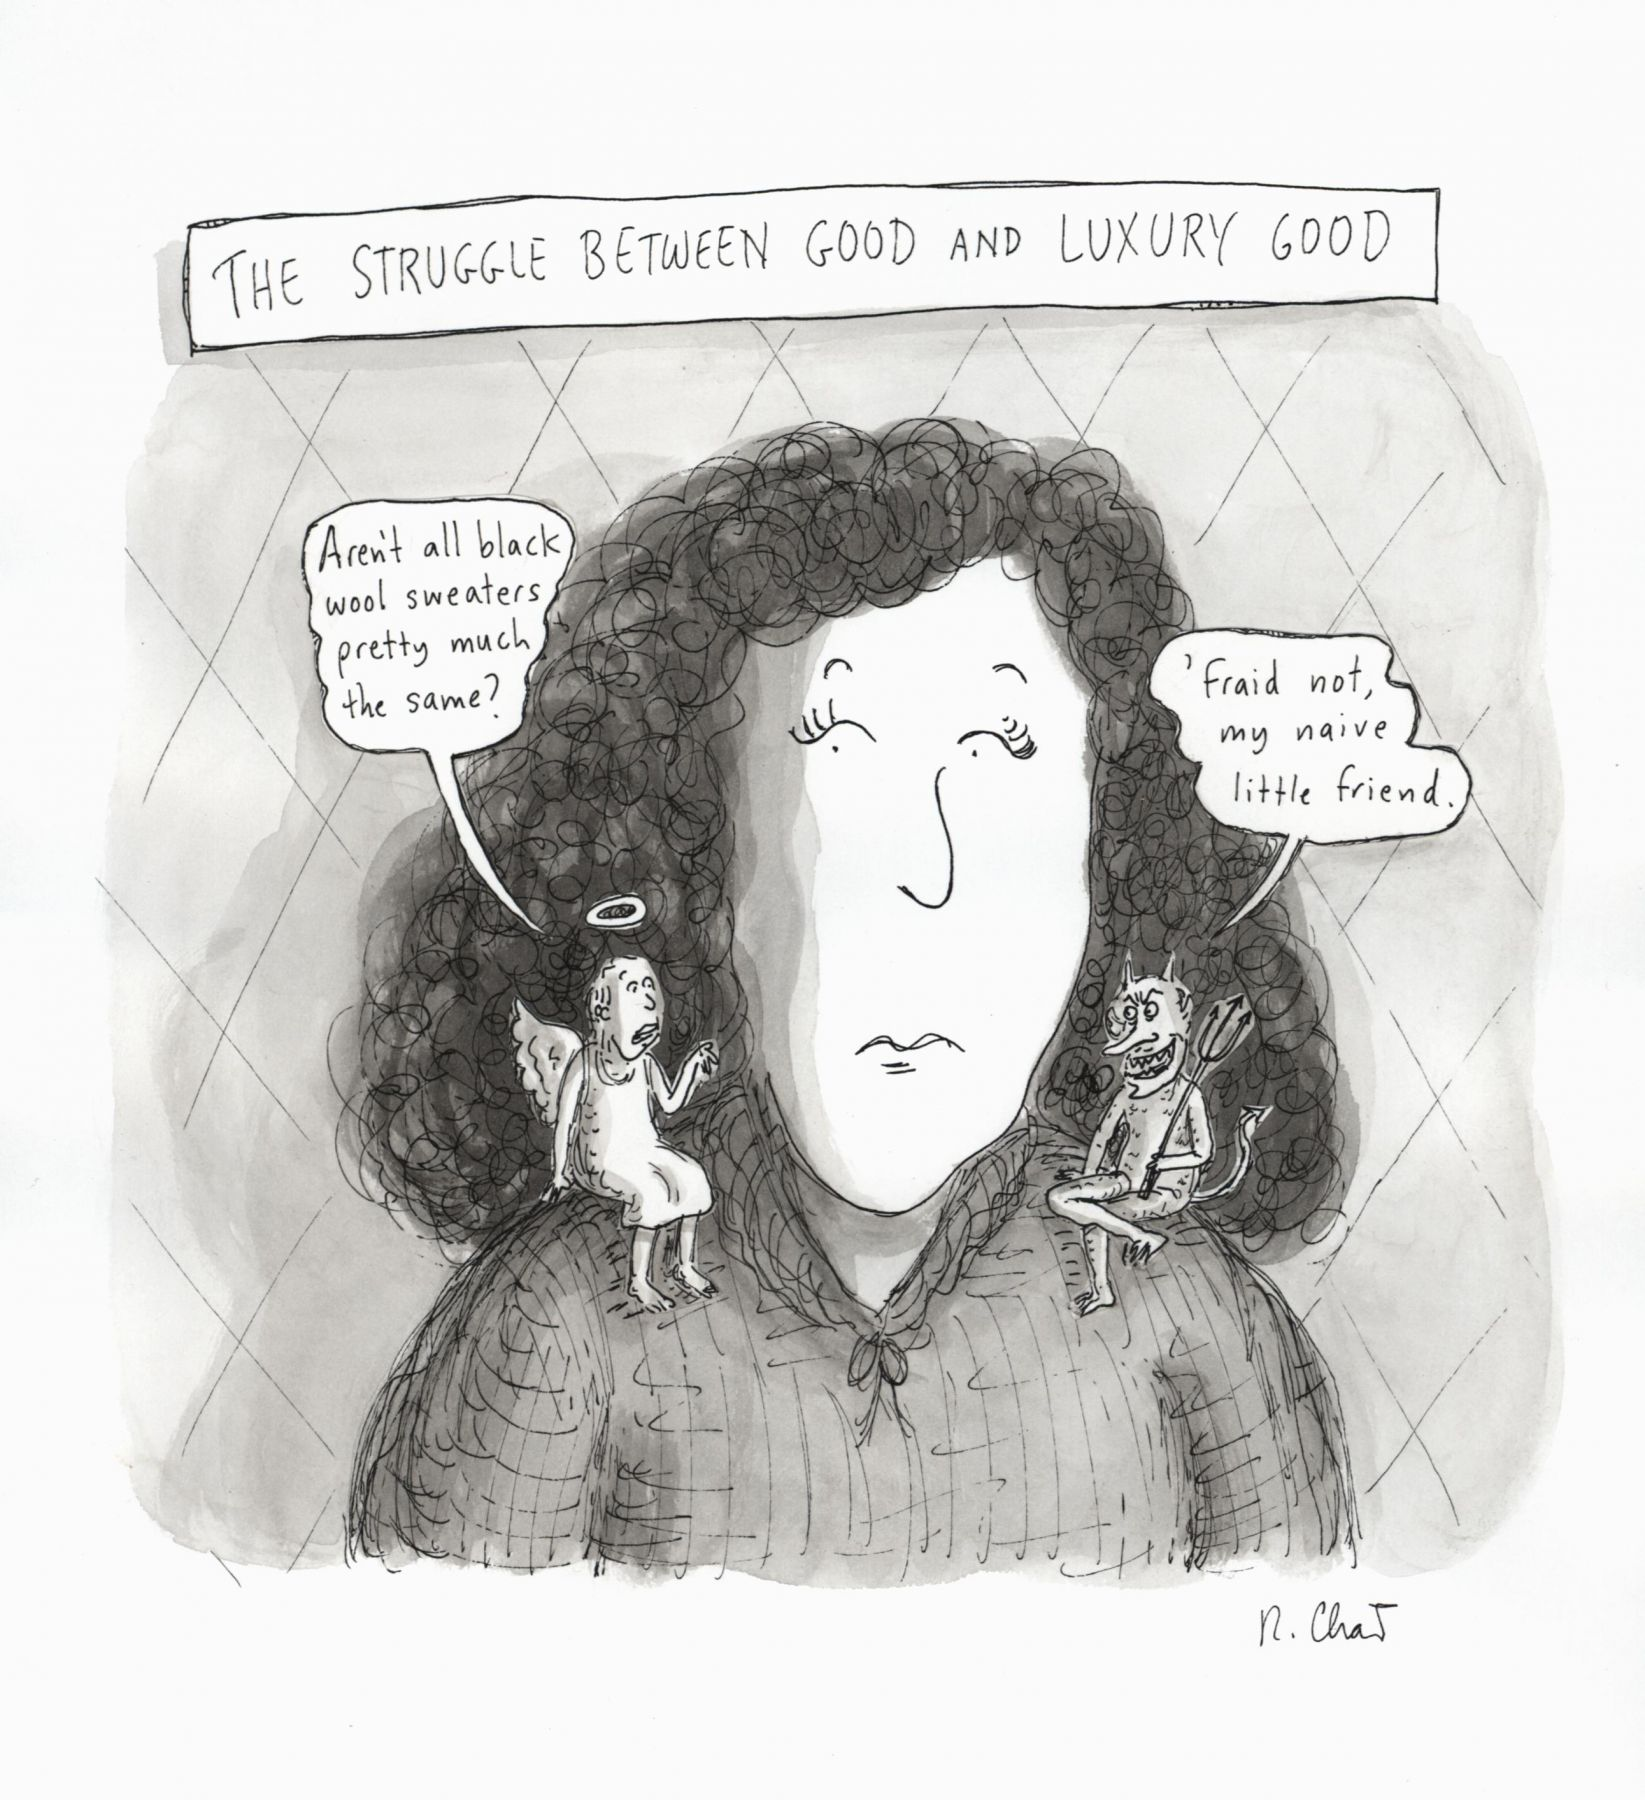 Roz Chast, The Struggle between Good and Luxury Good, published March 19, 2007